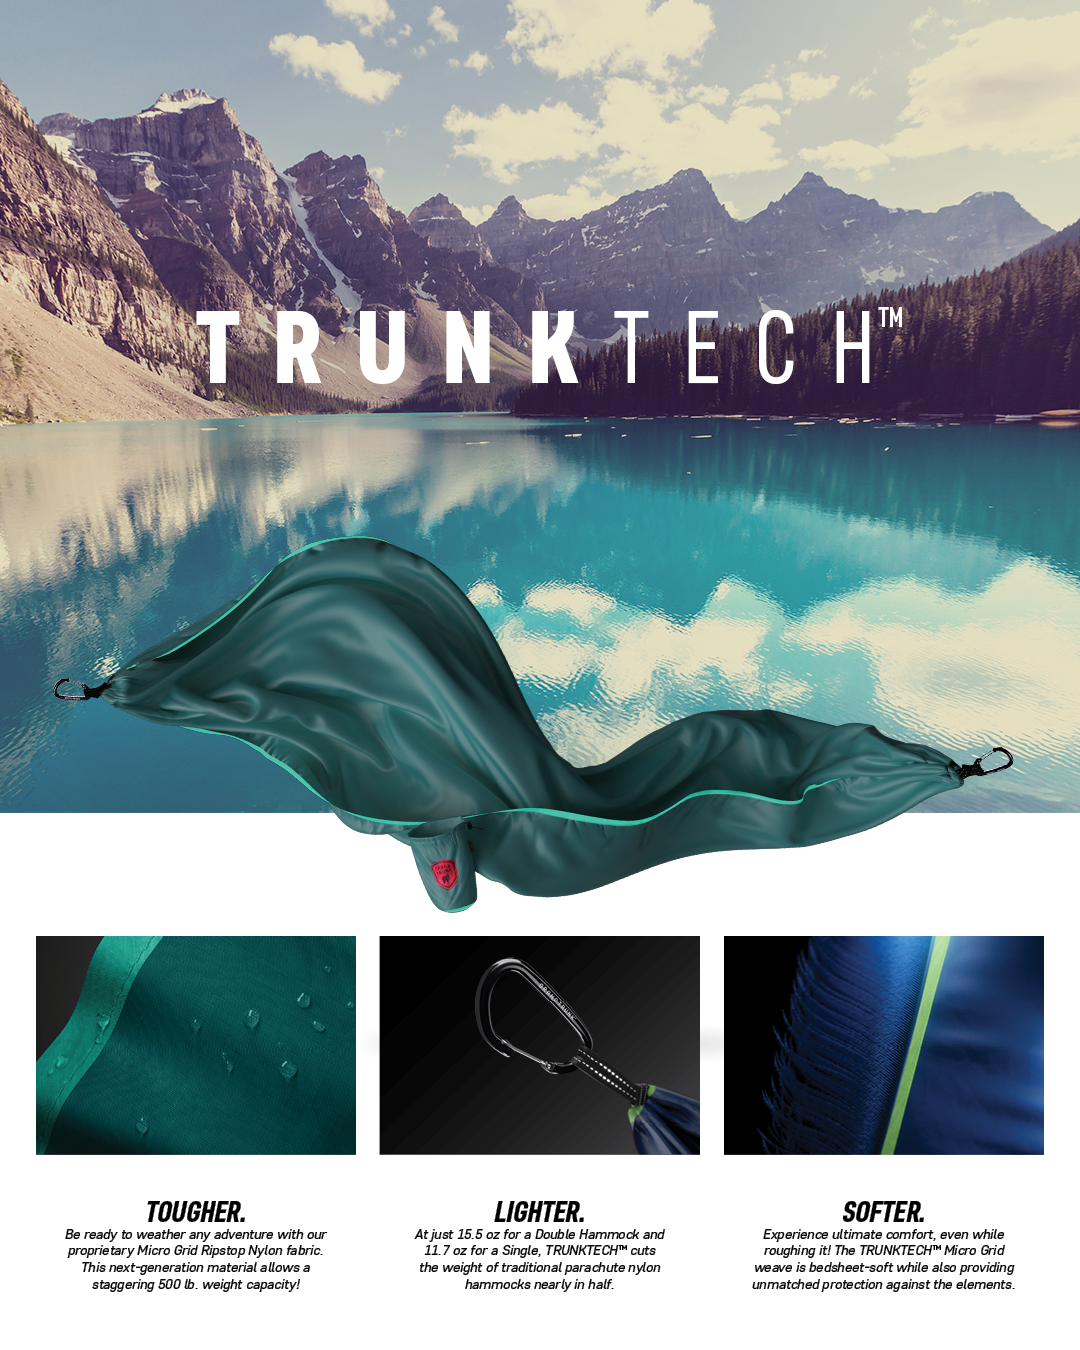 Trunk Tech hammocks by Grand Trunk